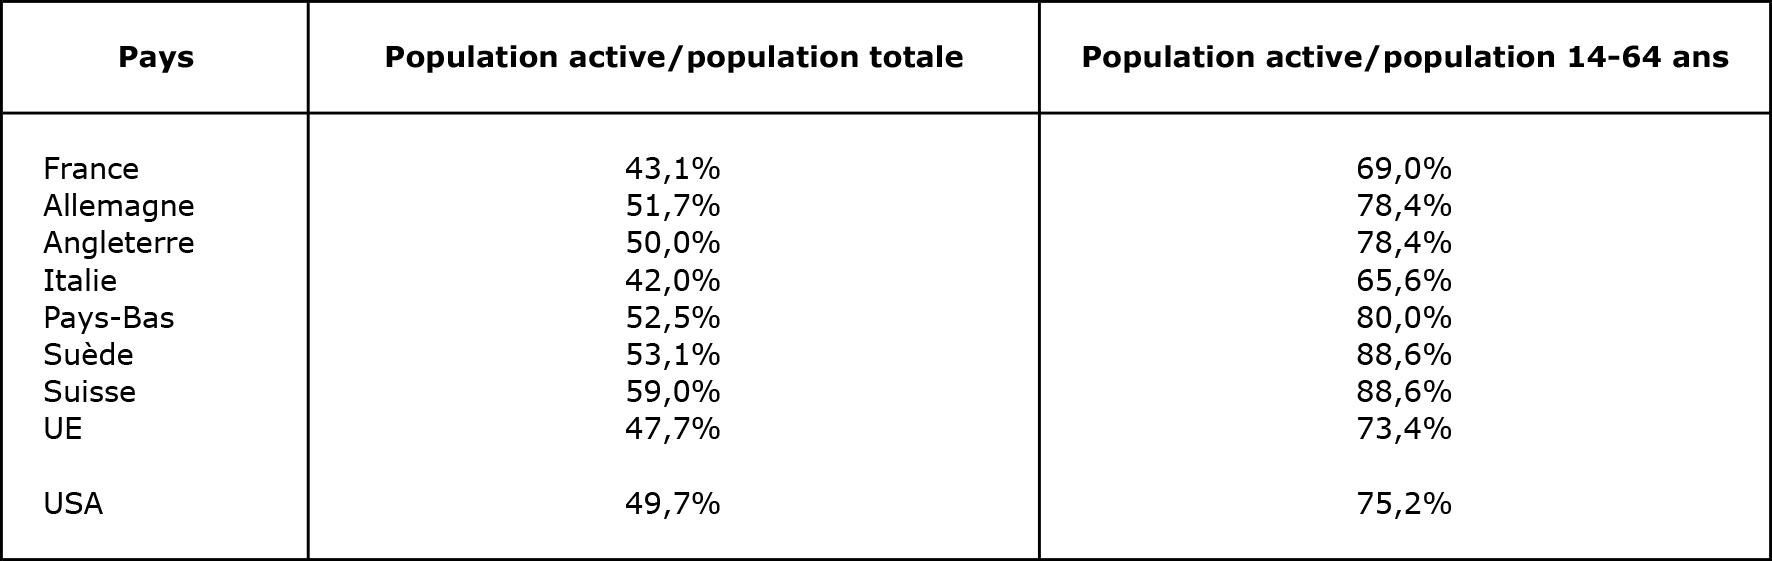 Population active/population totale